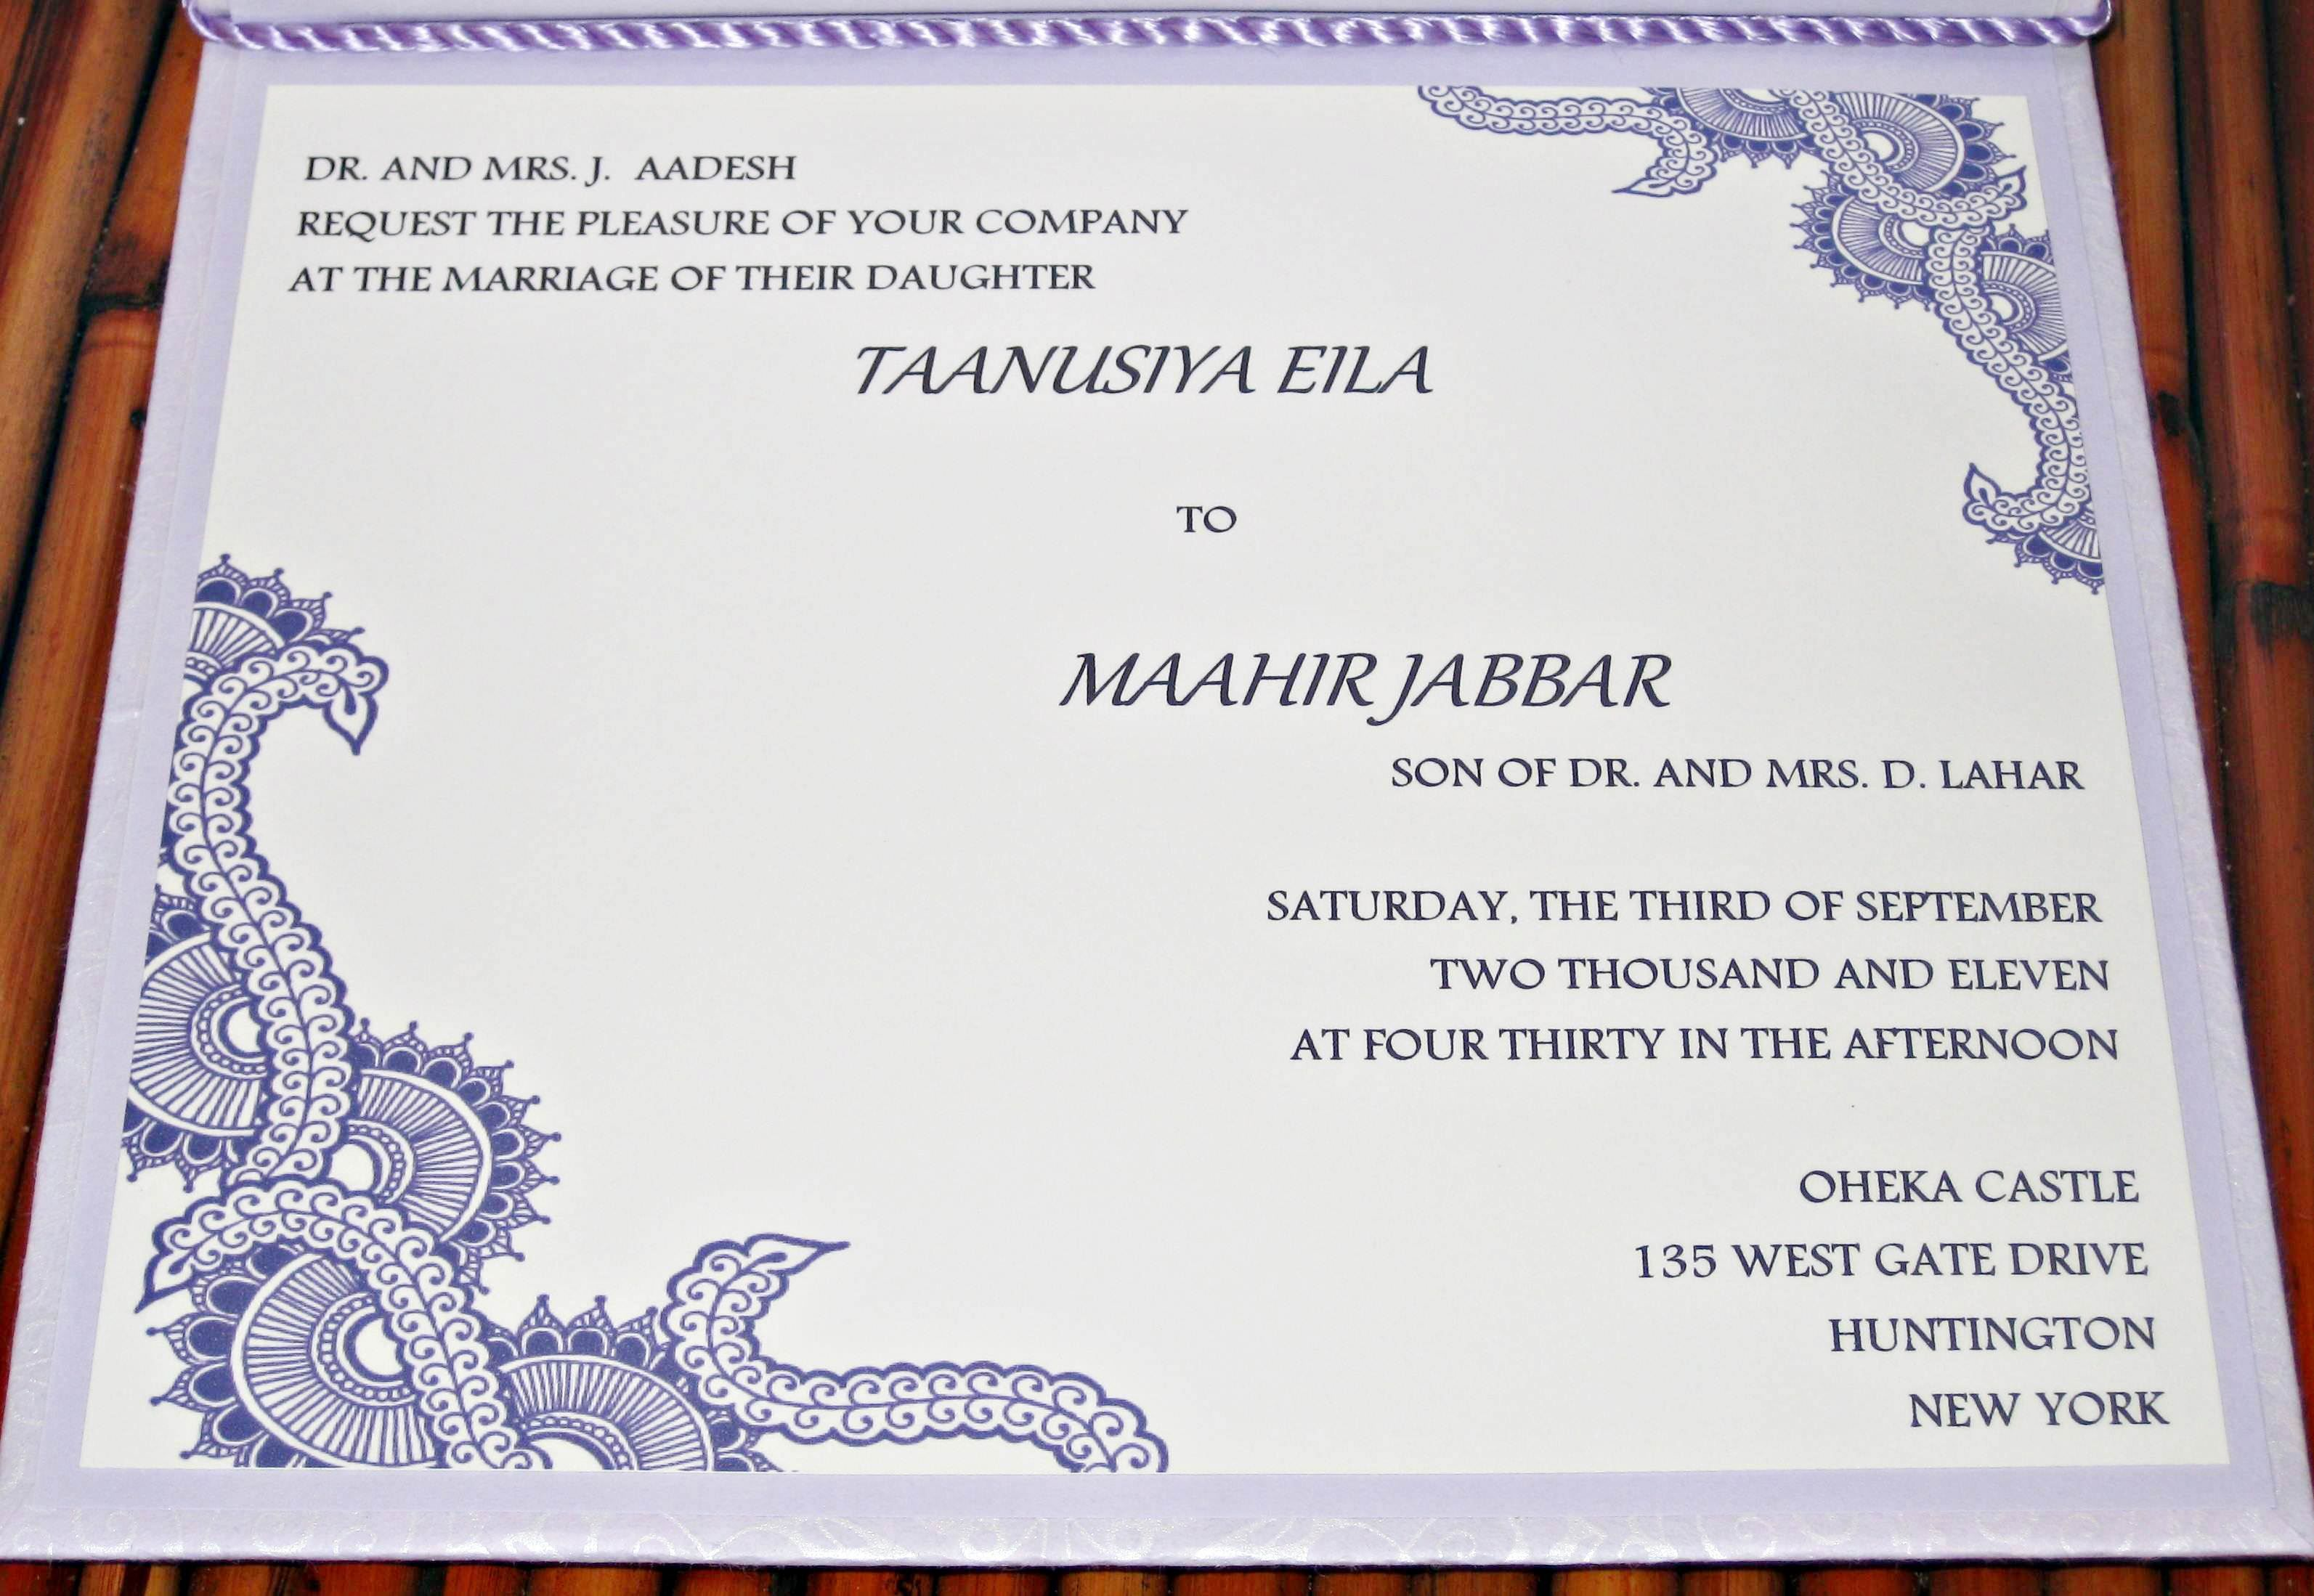 formatweddinginvitationcard